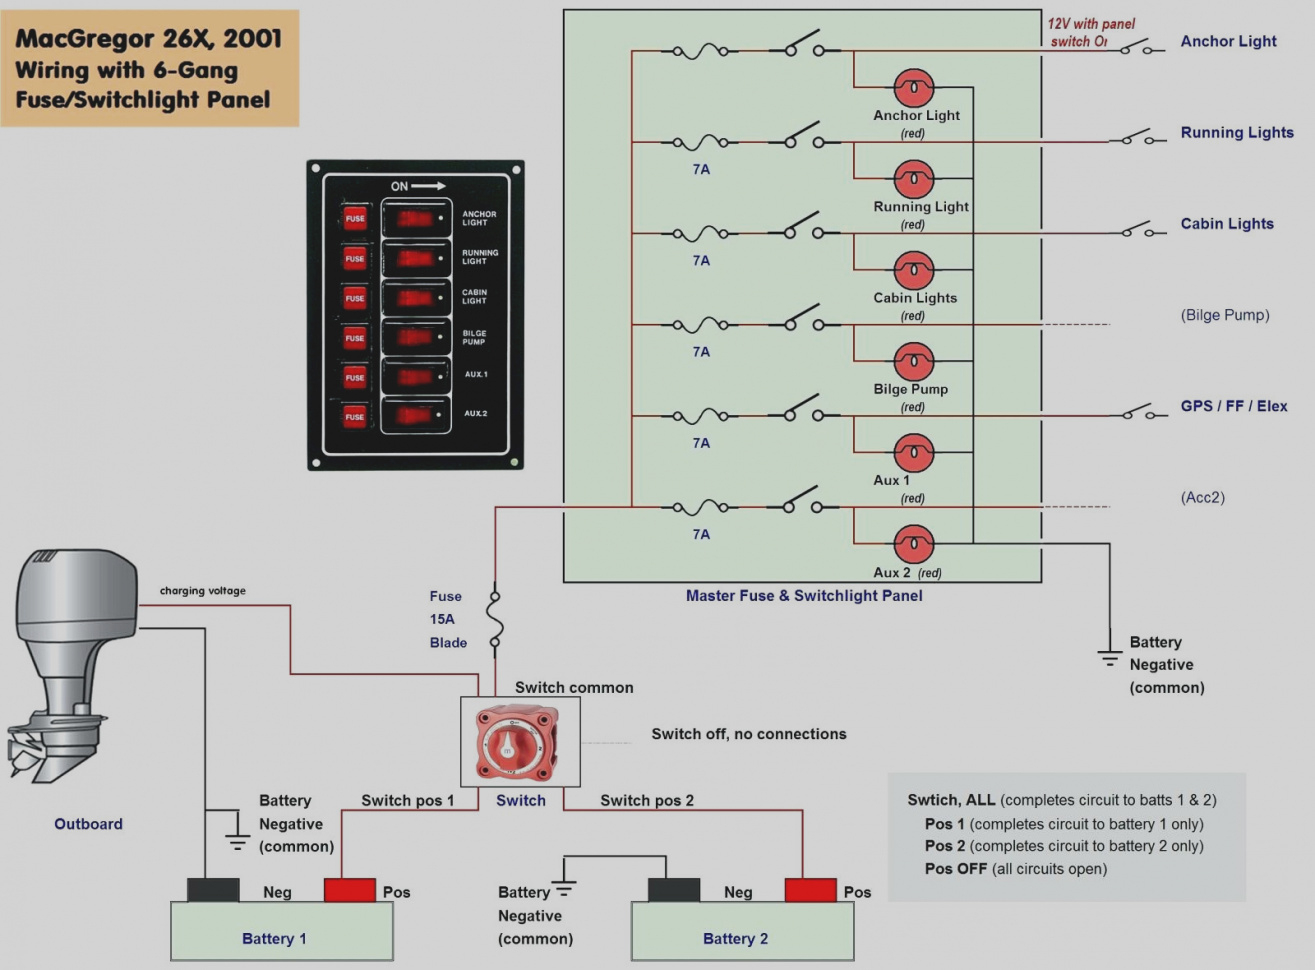 12 Volt Rocker Switch Panel Wiring Diagram | Wiring Diagram - 12V Switch Panel Wiring Diagram